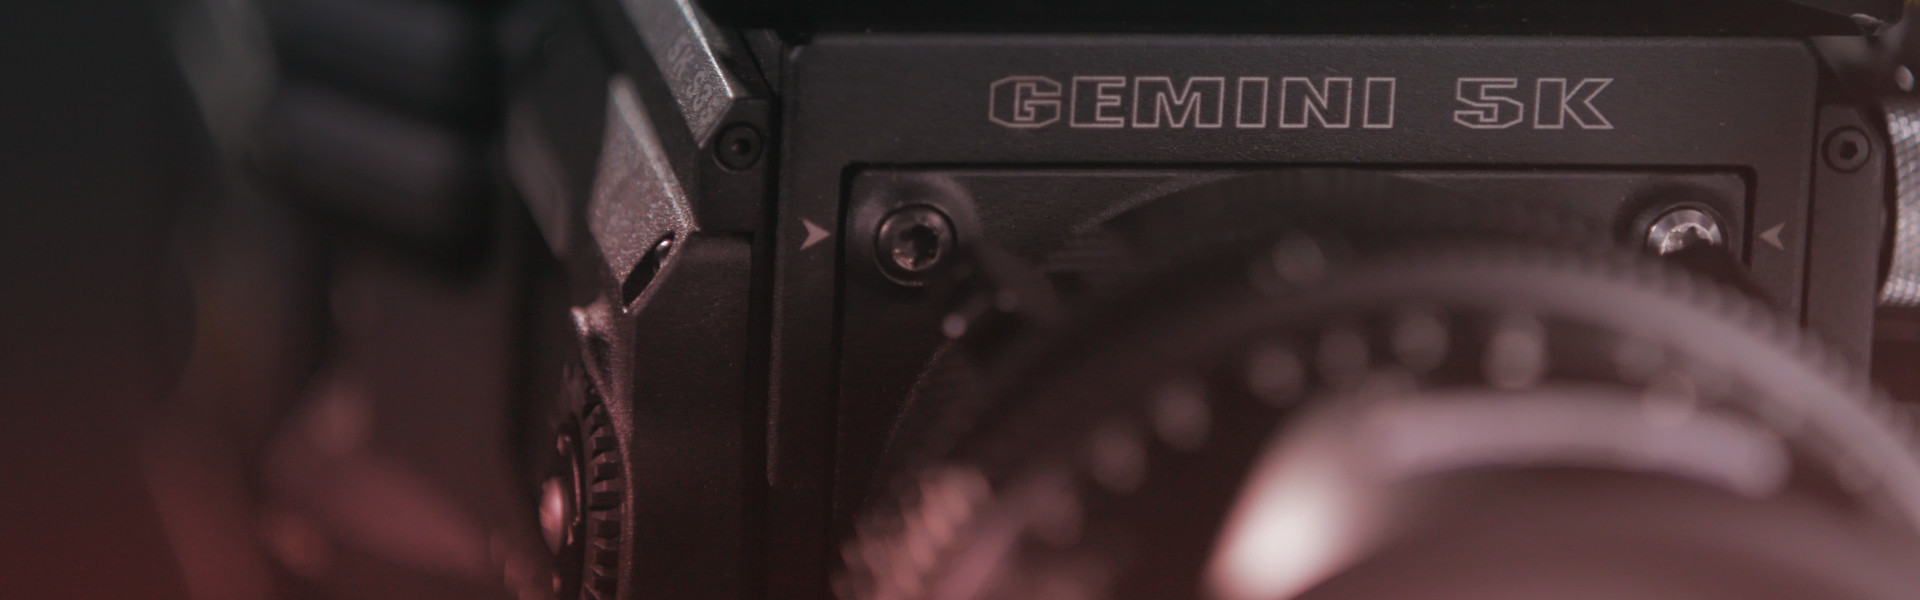 Header image for article At the Bench: The Versatility of the RED GEMINI Camera